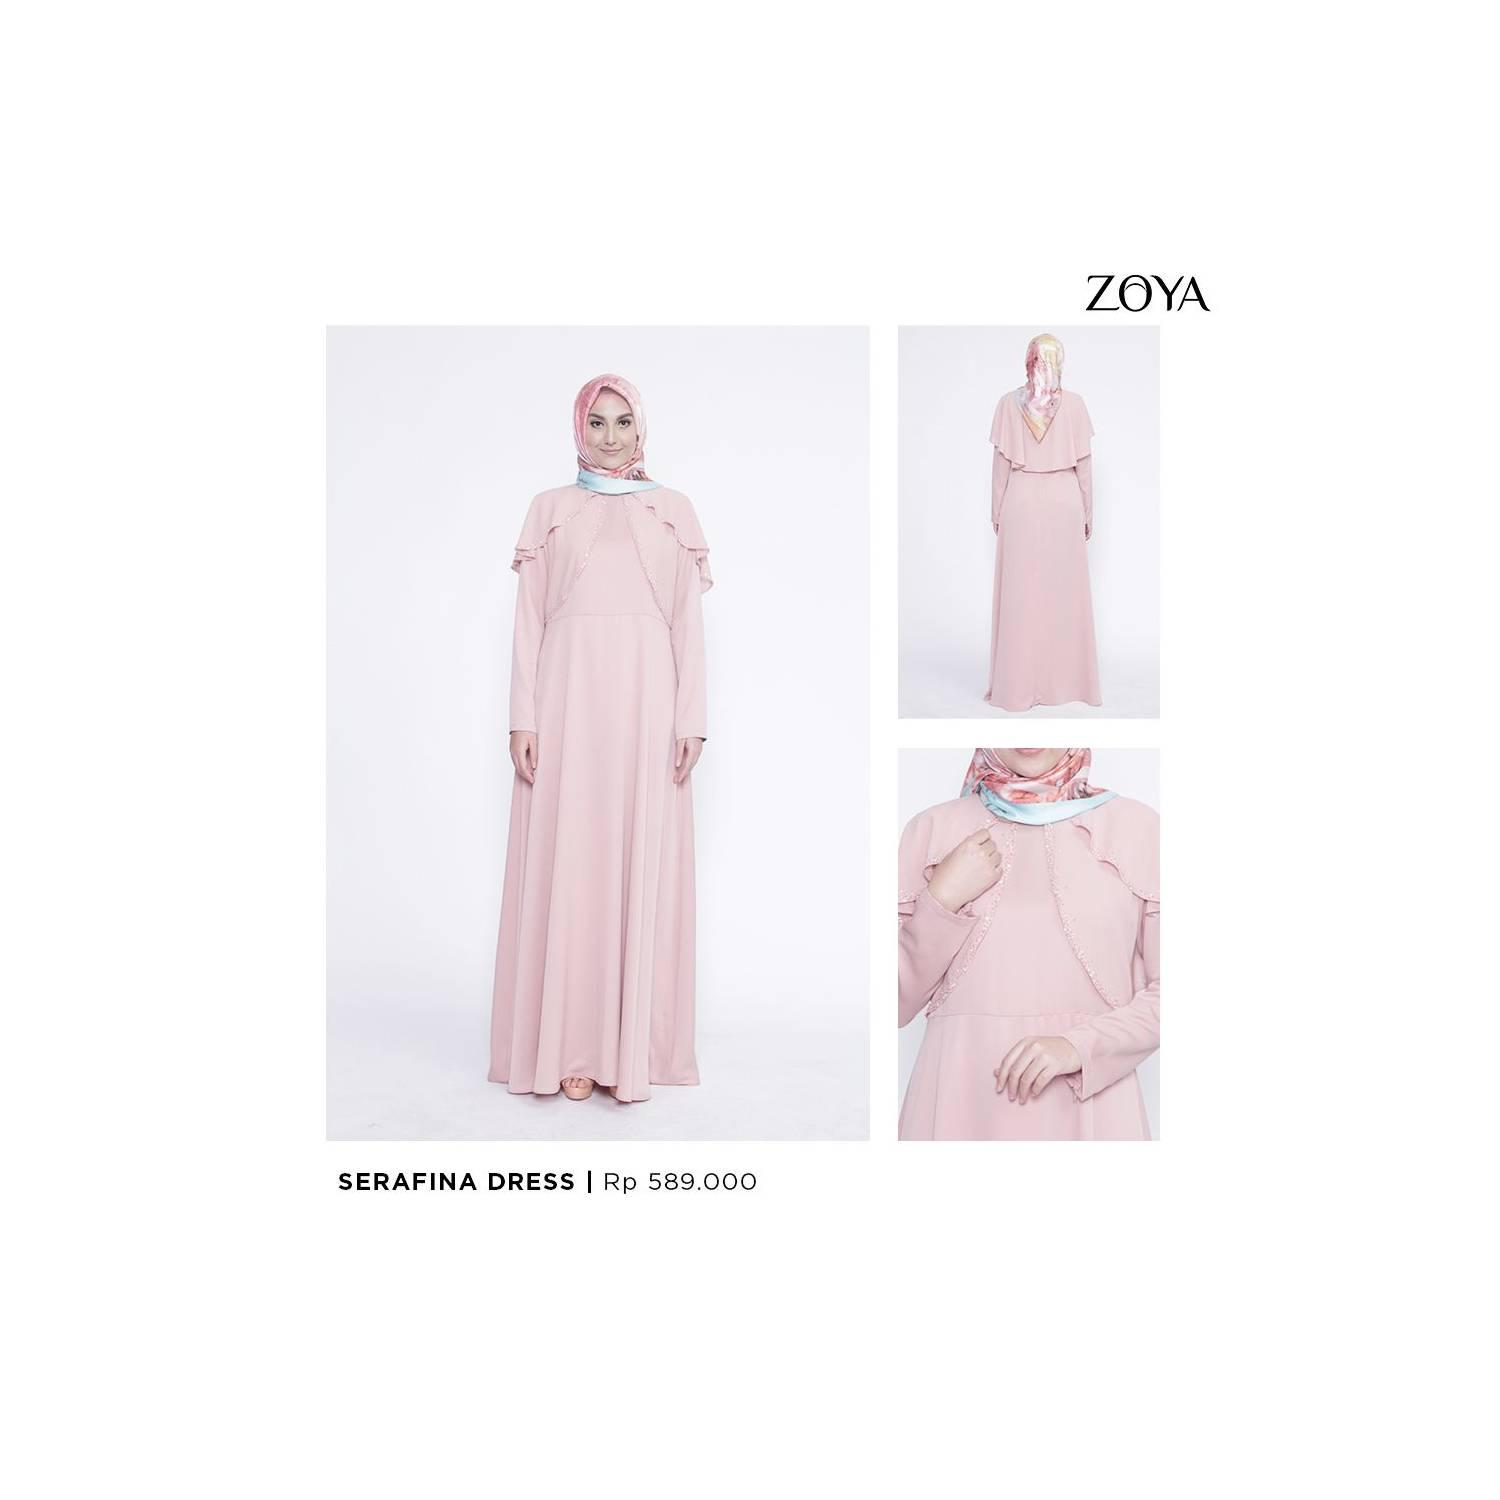 Sarafina dress by Zoya